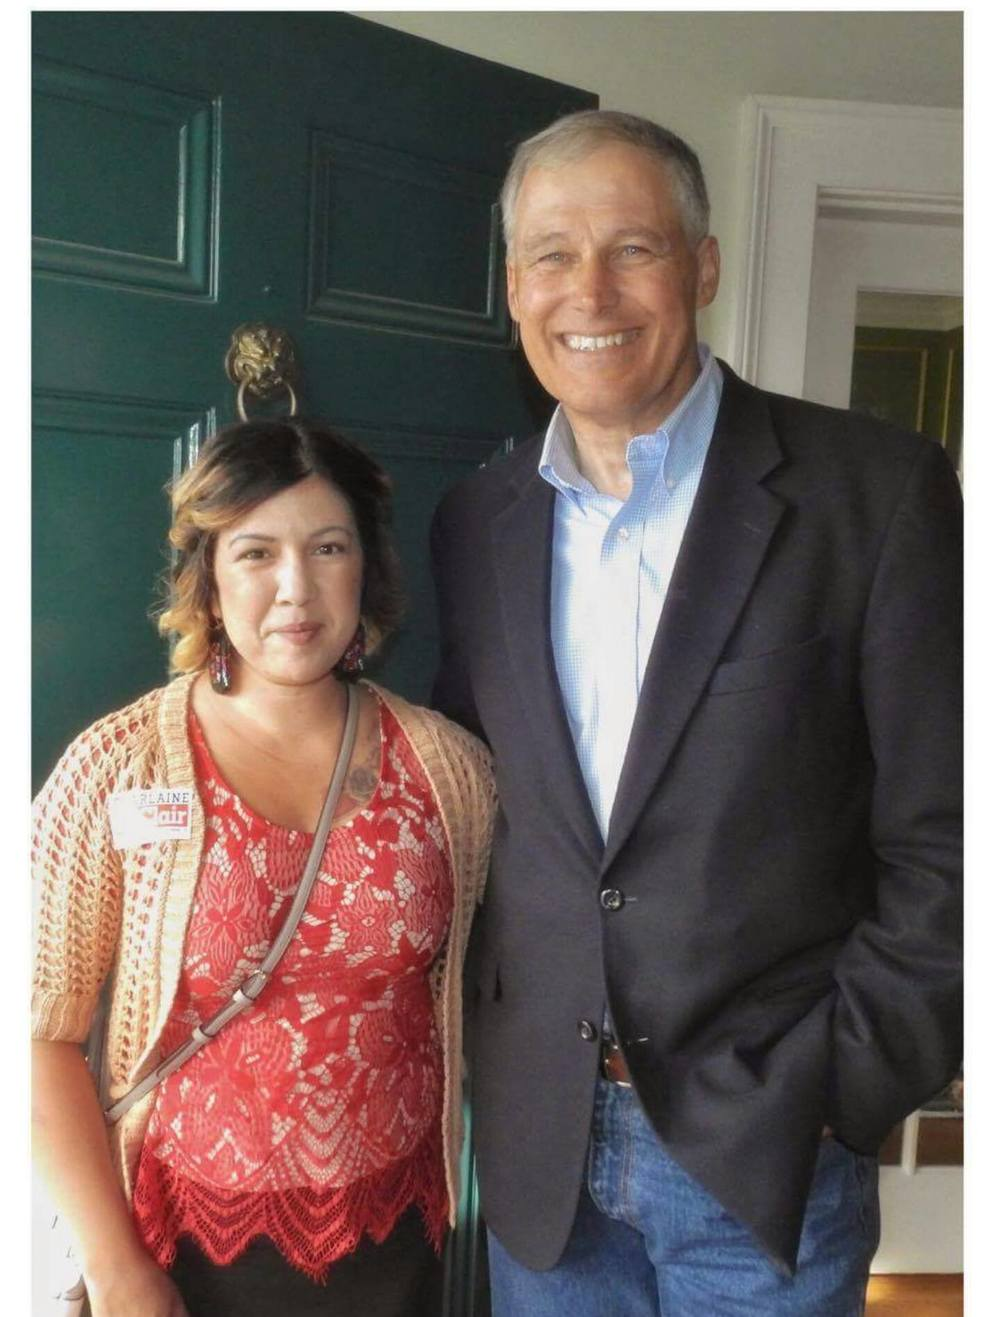 Sharlaine LaClair, Democratic candidate for 42nd District Representative, with Washington State Governor Jay Inslee. PHOTO: Tara Nelson